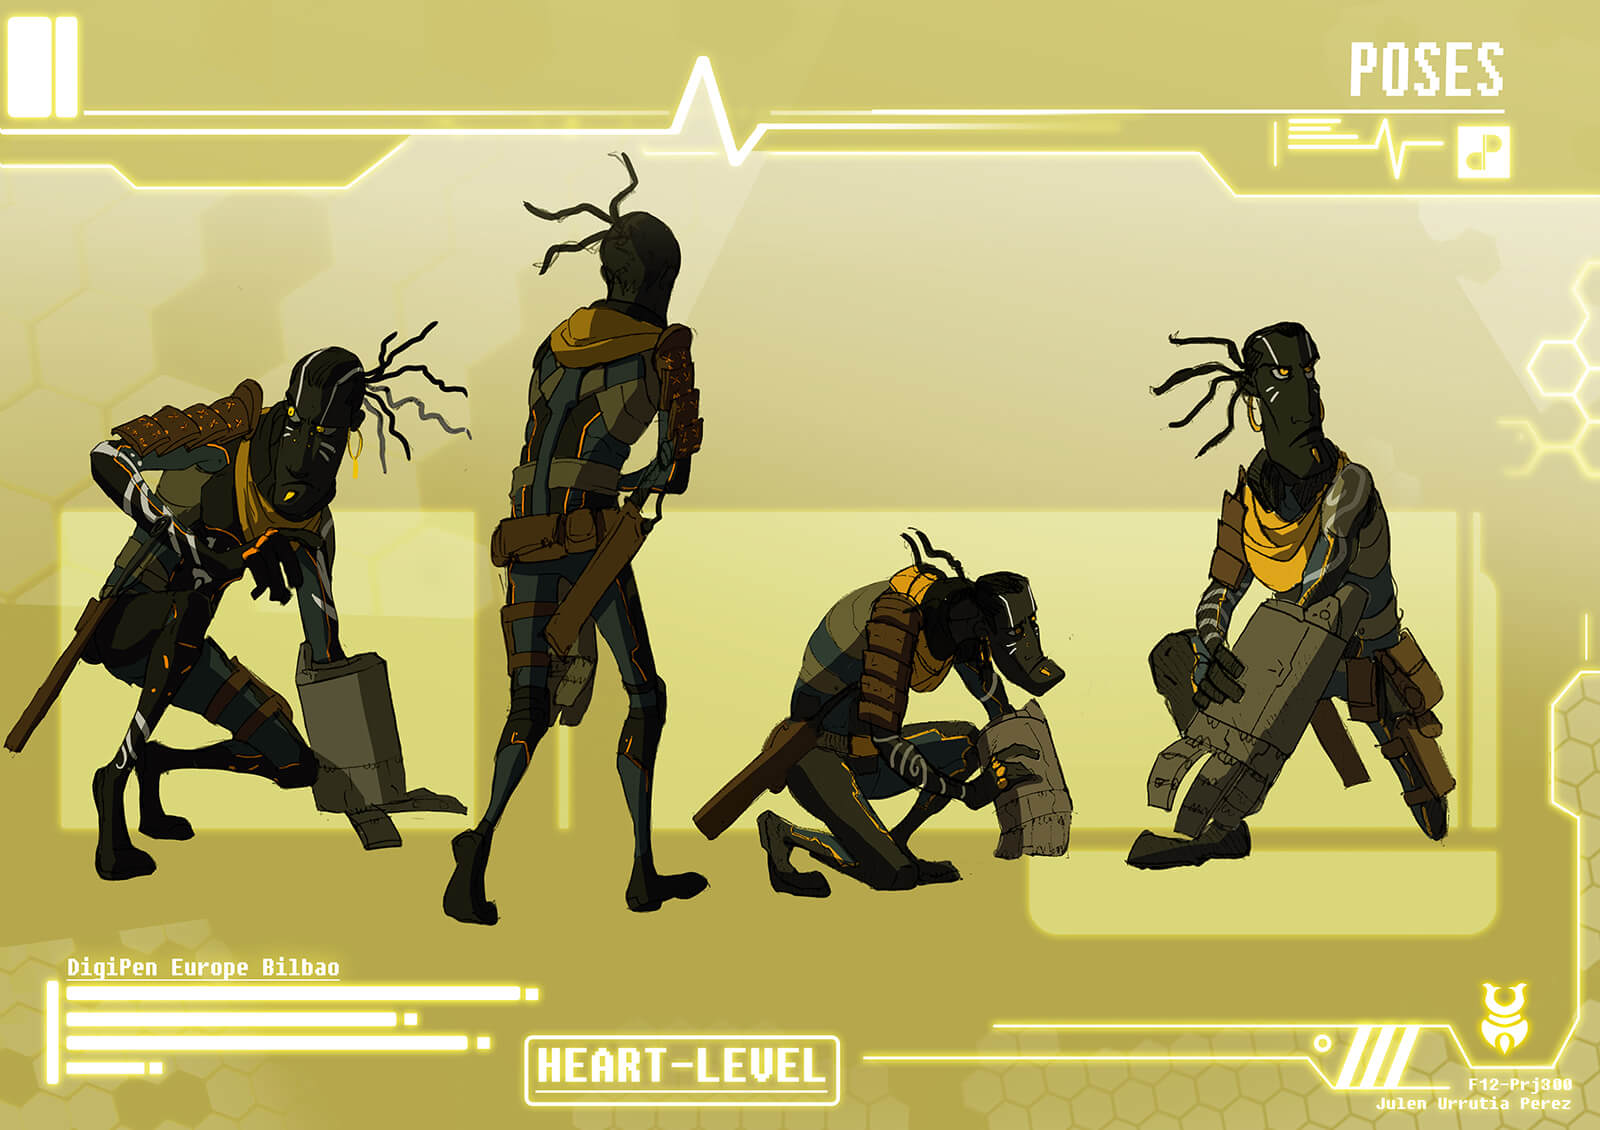 Full-color drawings of a tall, thin man in earth-tone body armor in poses such as walking and crouching